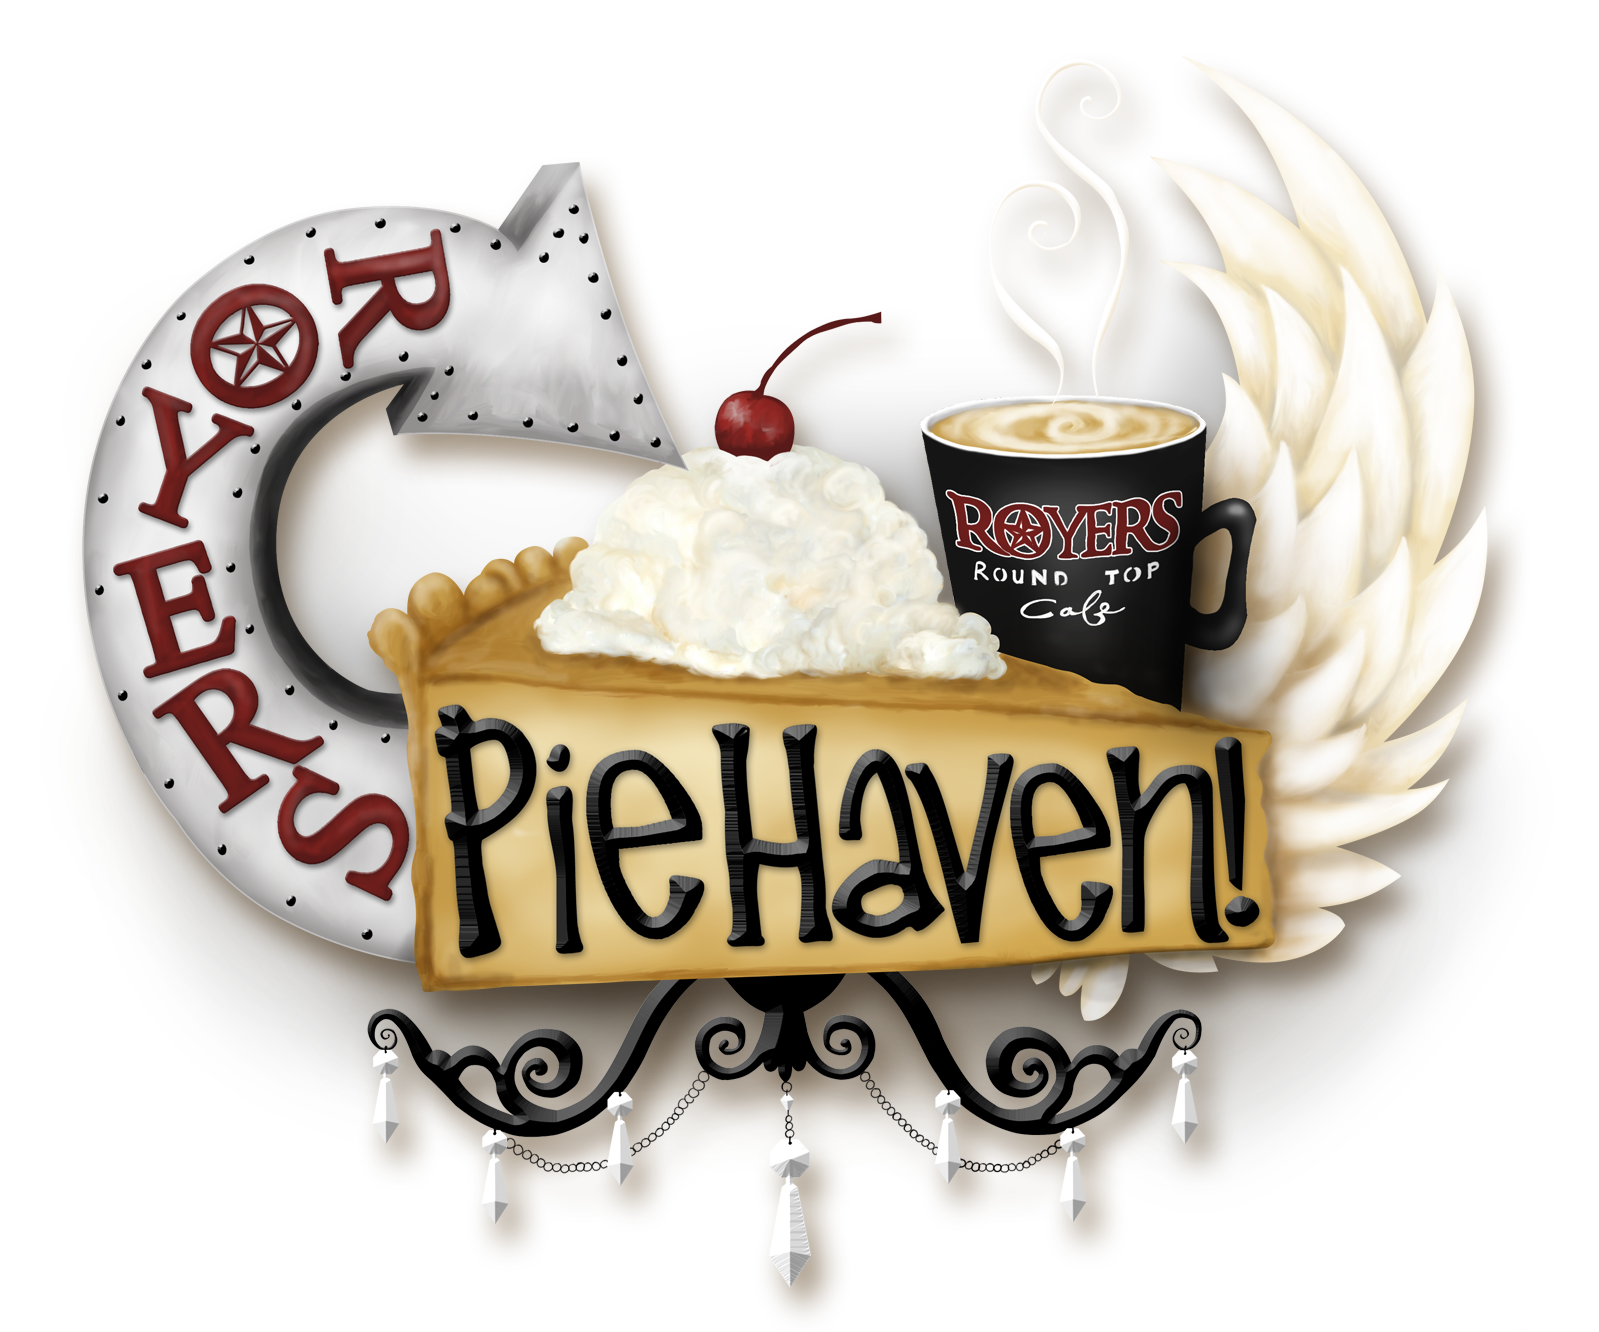 Clipart apple pie double crust and ice cream image free download Menu | Royers Pie Haven image free download